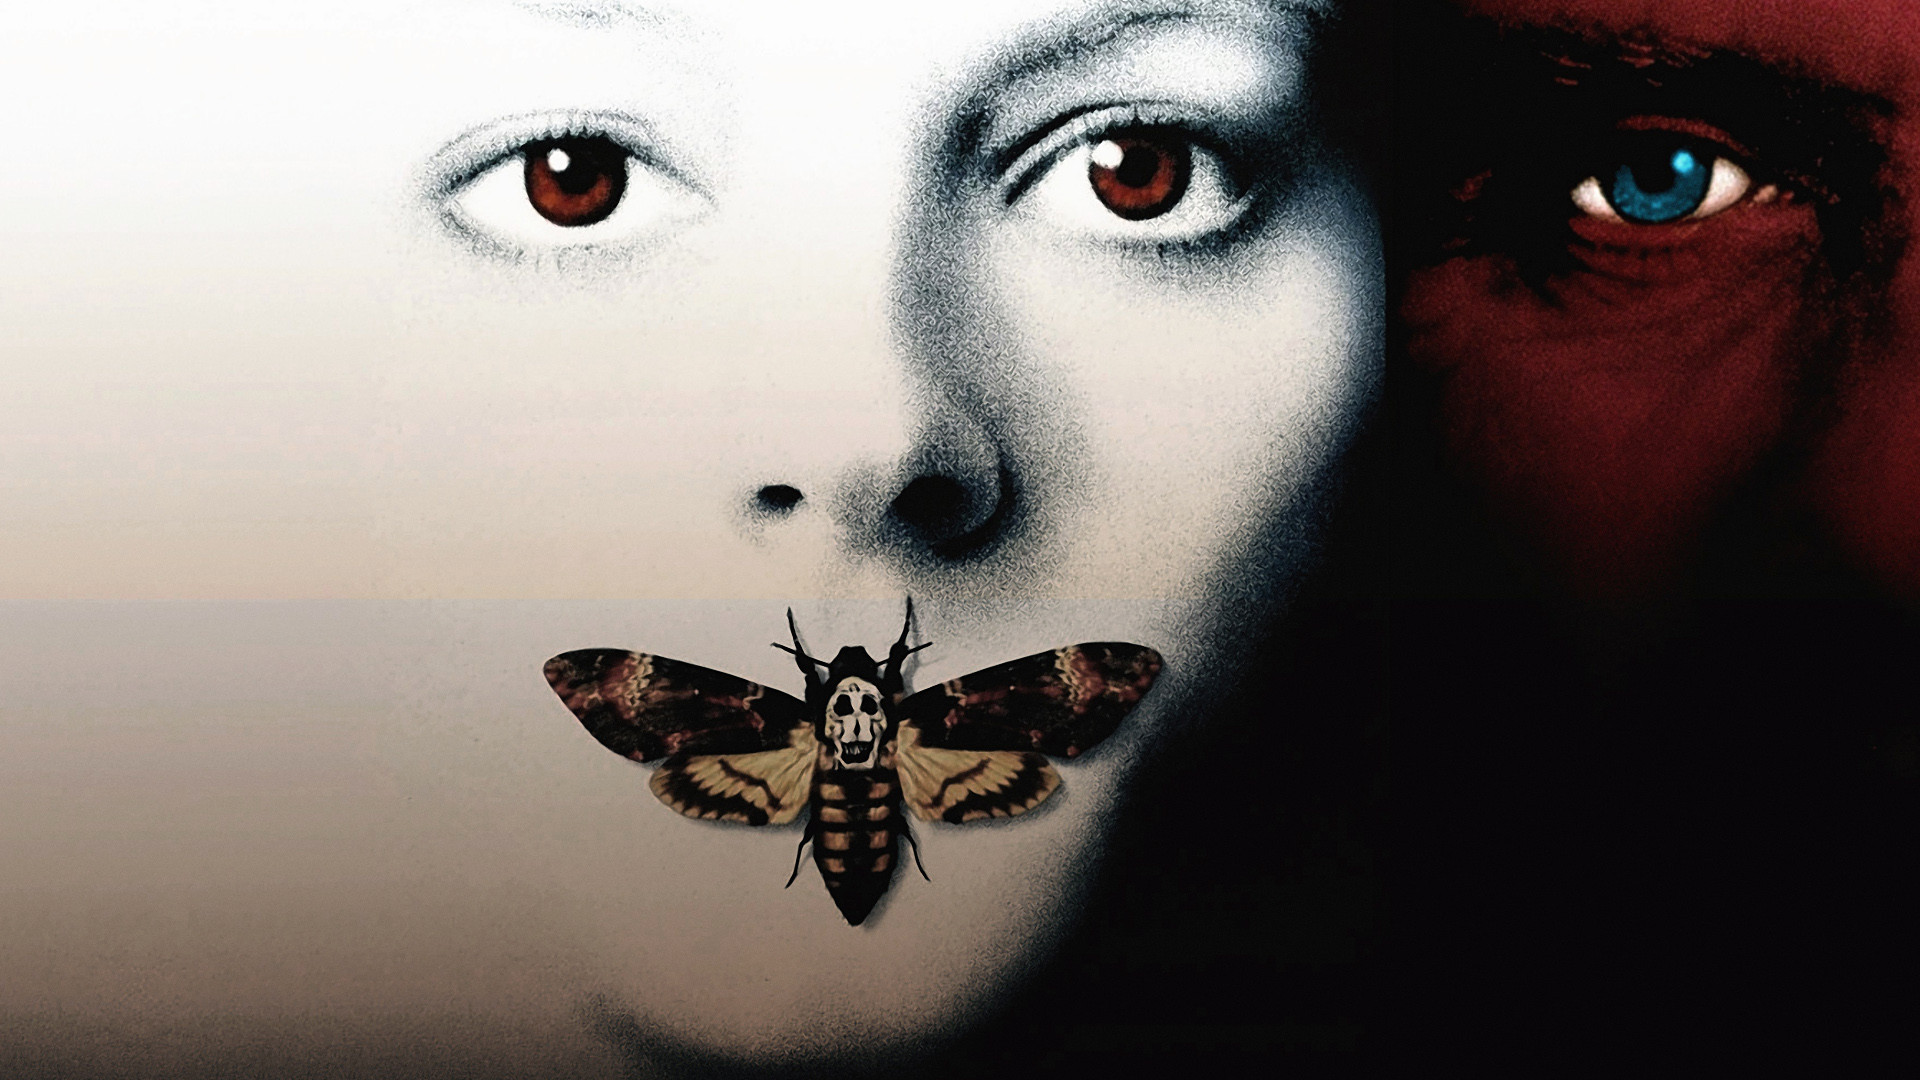 THE SILENCE OF THE LAMBS thriller drama dark psychedelic ...